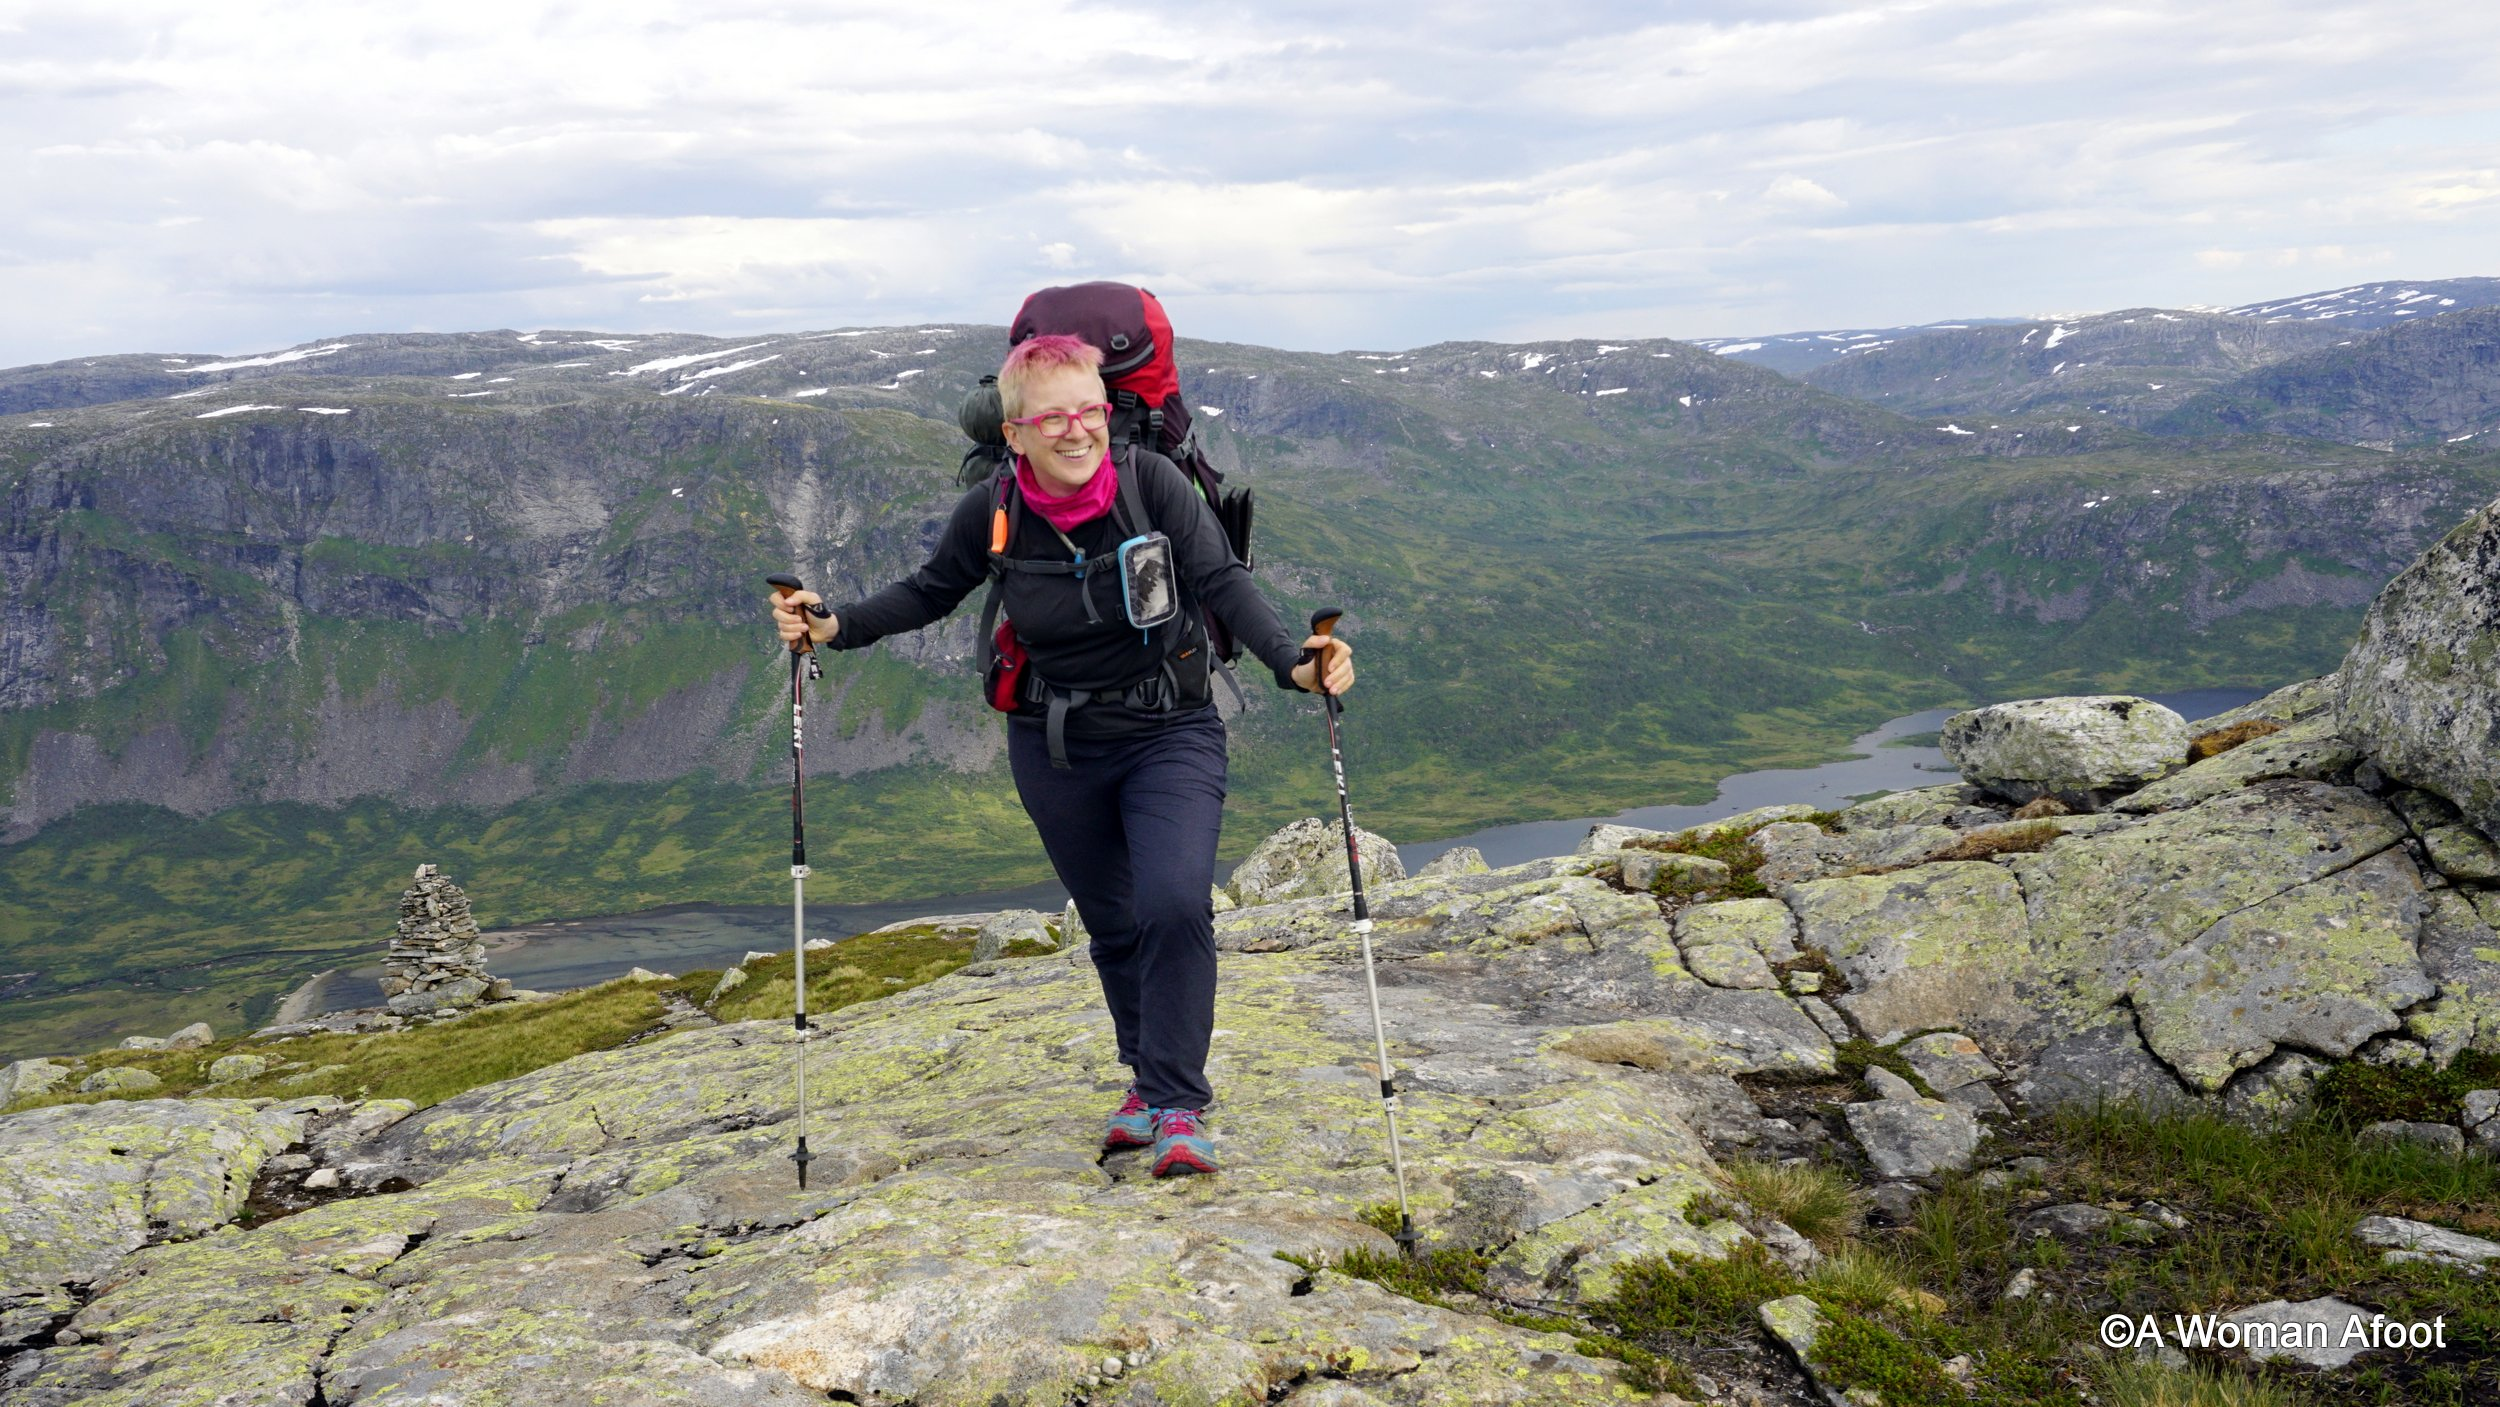 Norway is the best destination for hiking & camping (solo). Why? Read all the reasons why I think so @ awomanafoot.com! #Norway #hiking #camping #trails #Europe #Scandinavia | Best hiking destinations | Trails for solo hiking | Solo wild camping in Norway | #WildCamping | Female hikers |